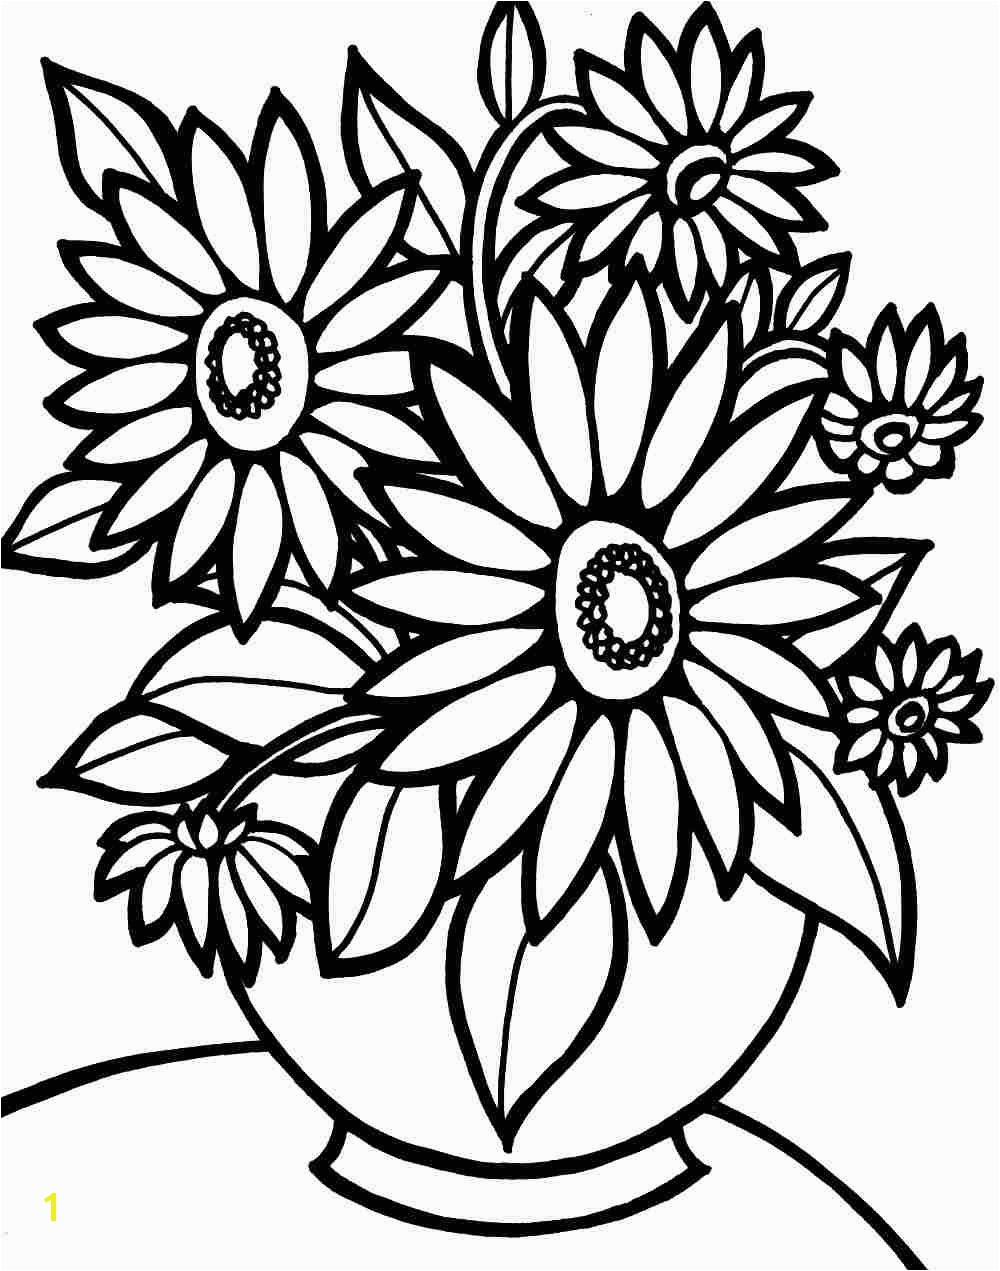 Flower Coloring Pages Printable Free free printable adult coloring pages flower coloring pages pictures